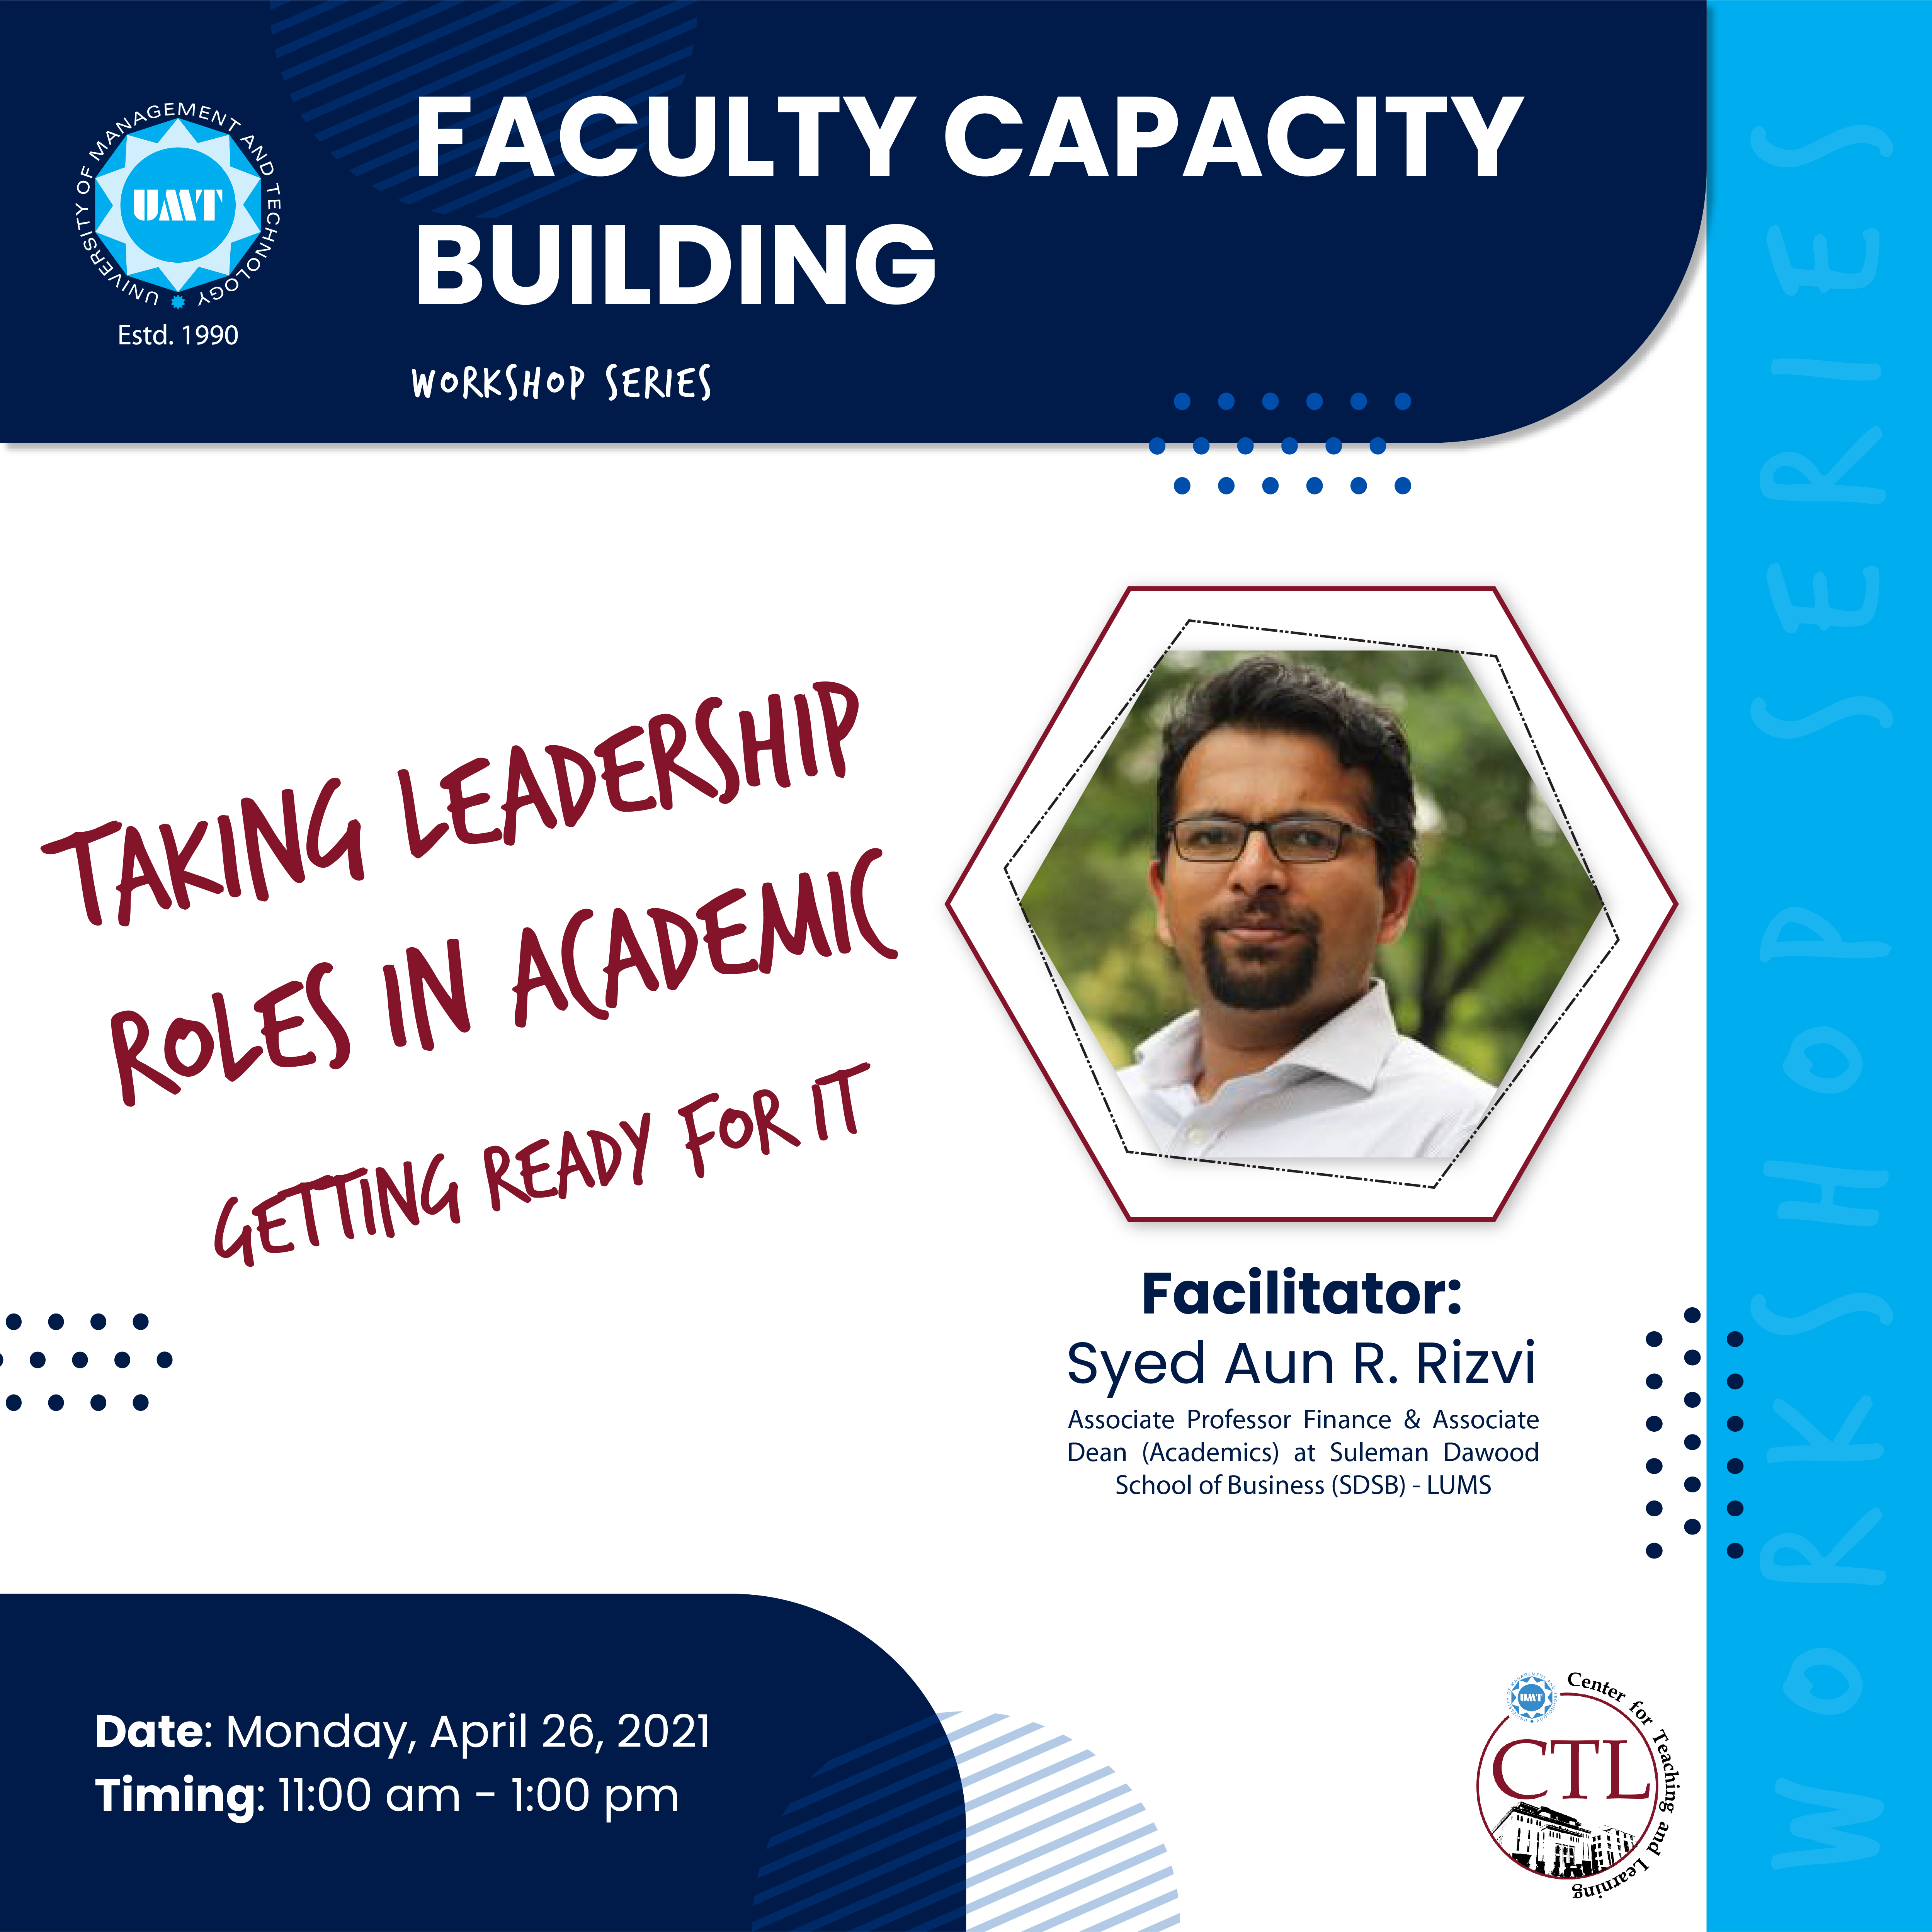 Taking Leadership Role In Academic - Getting Ready For It